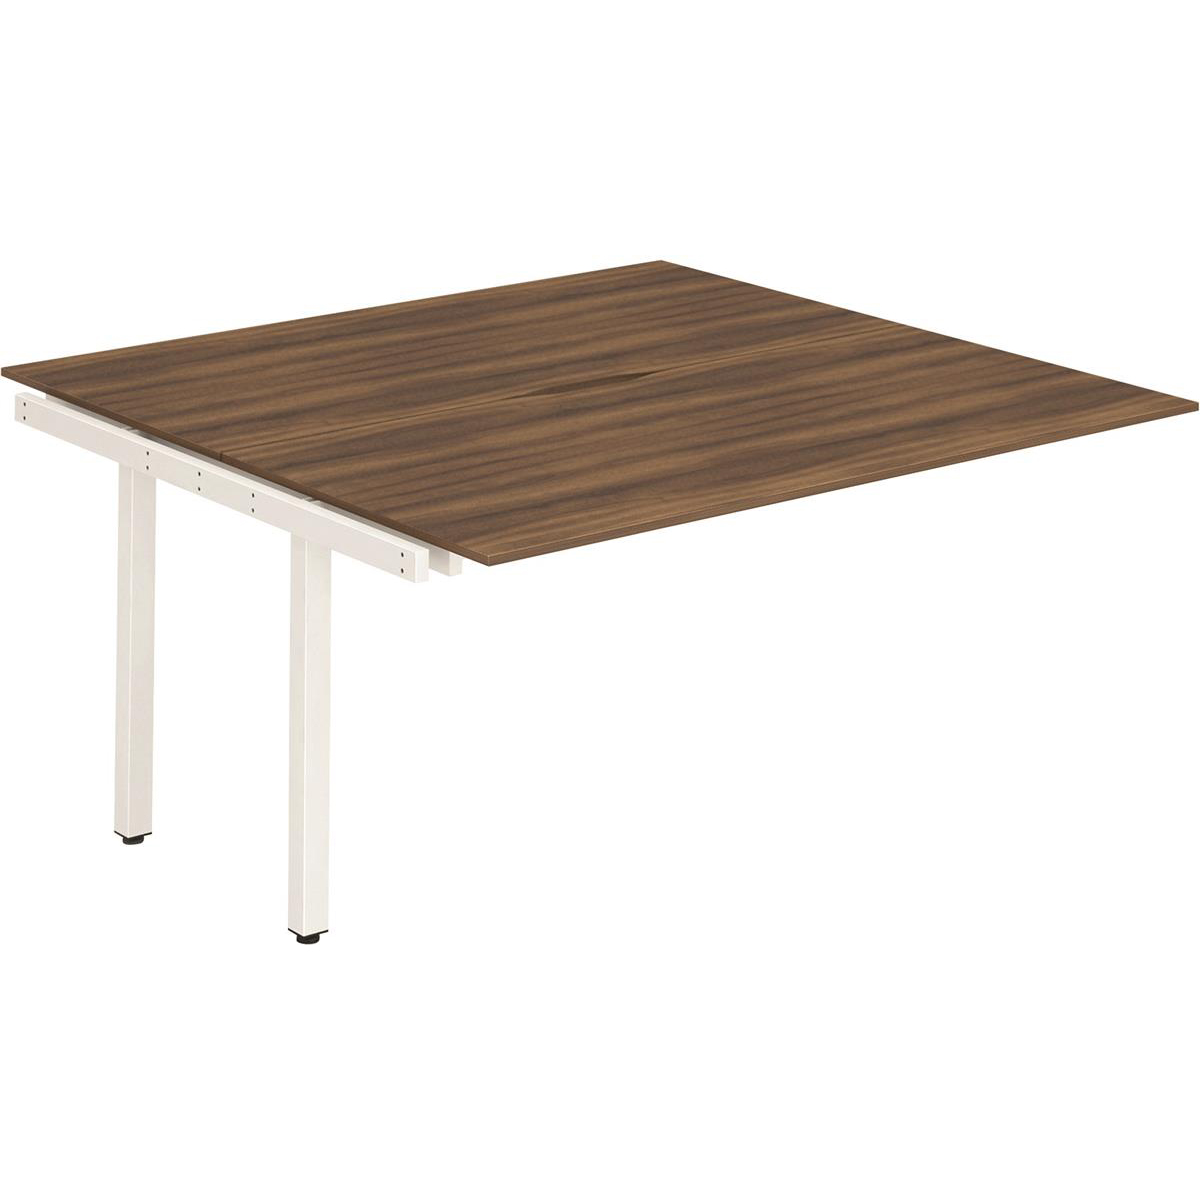 Trexus Bench Desk Double Extension Back to Back Configuration White Leg 1200x1600mm Walnut Ref BE199